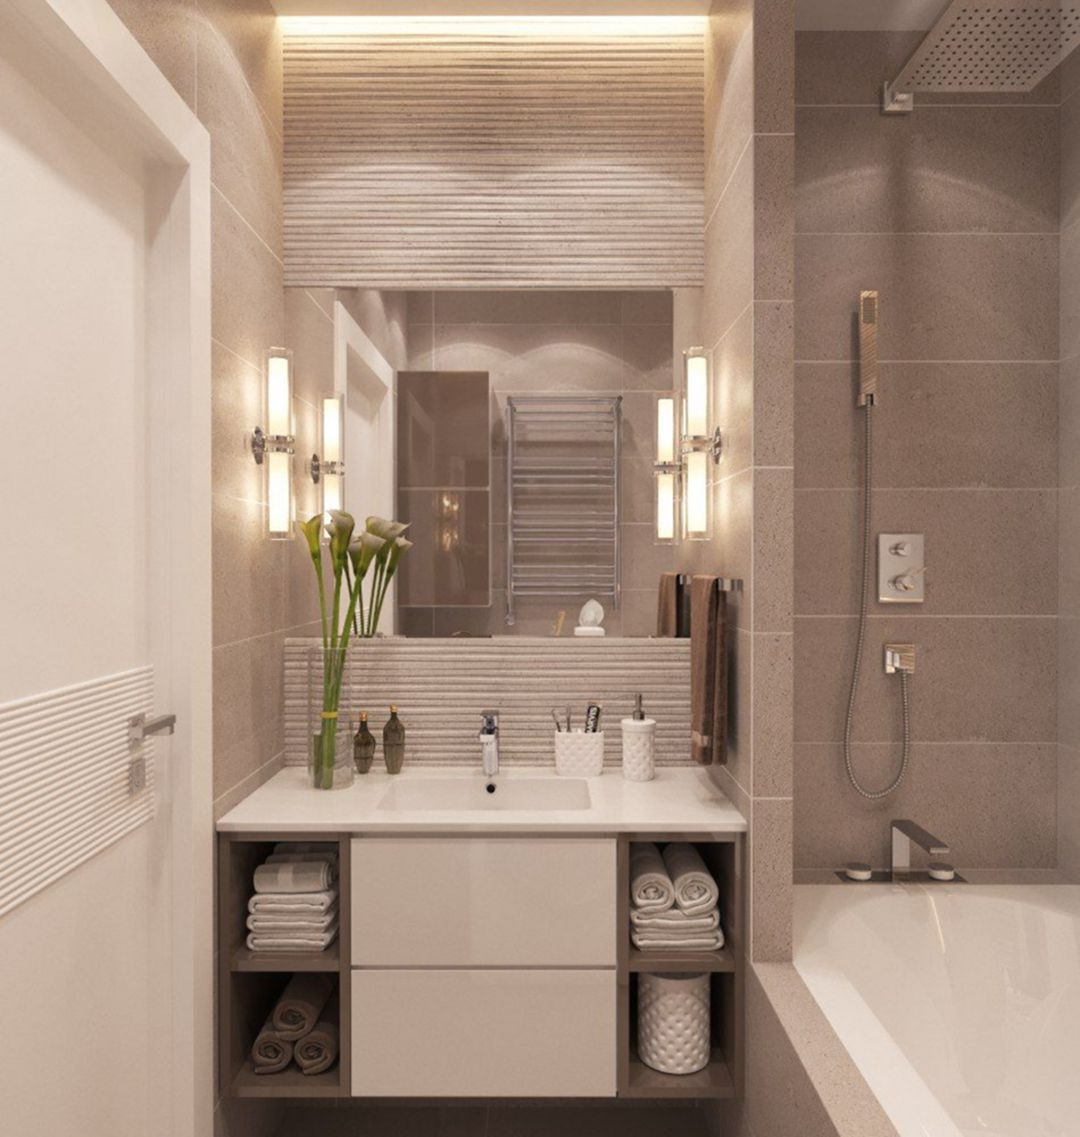 25 Contemporary Bathroom Design Ideas To Enhance Your Home — TERACEE